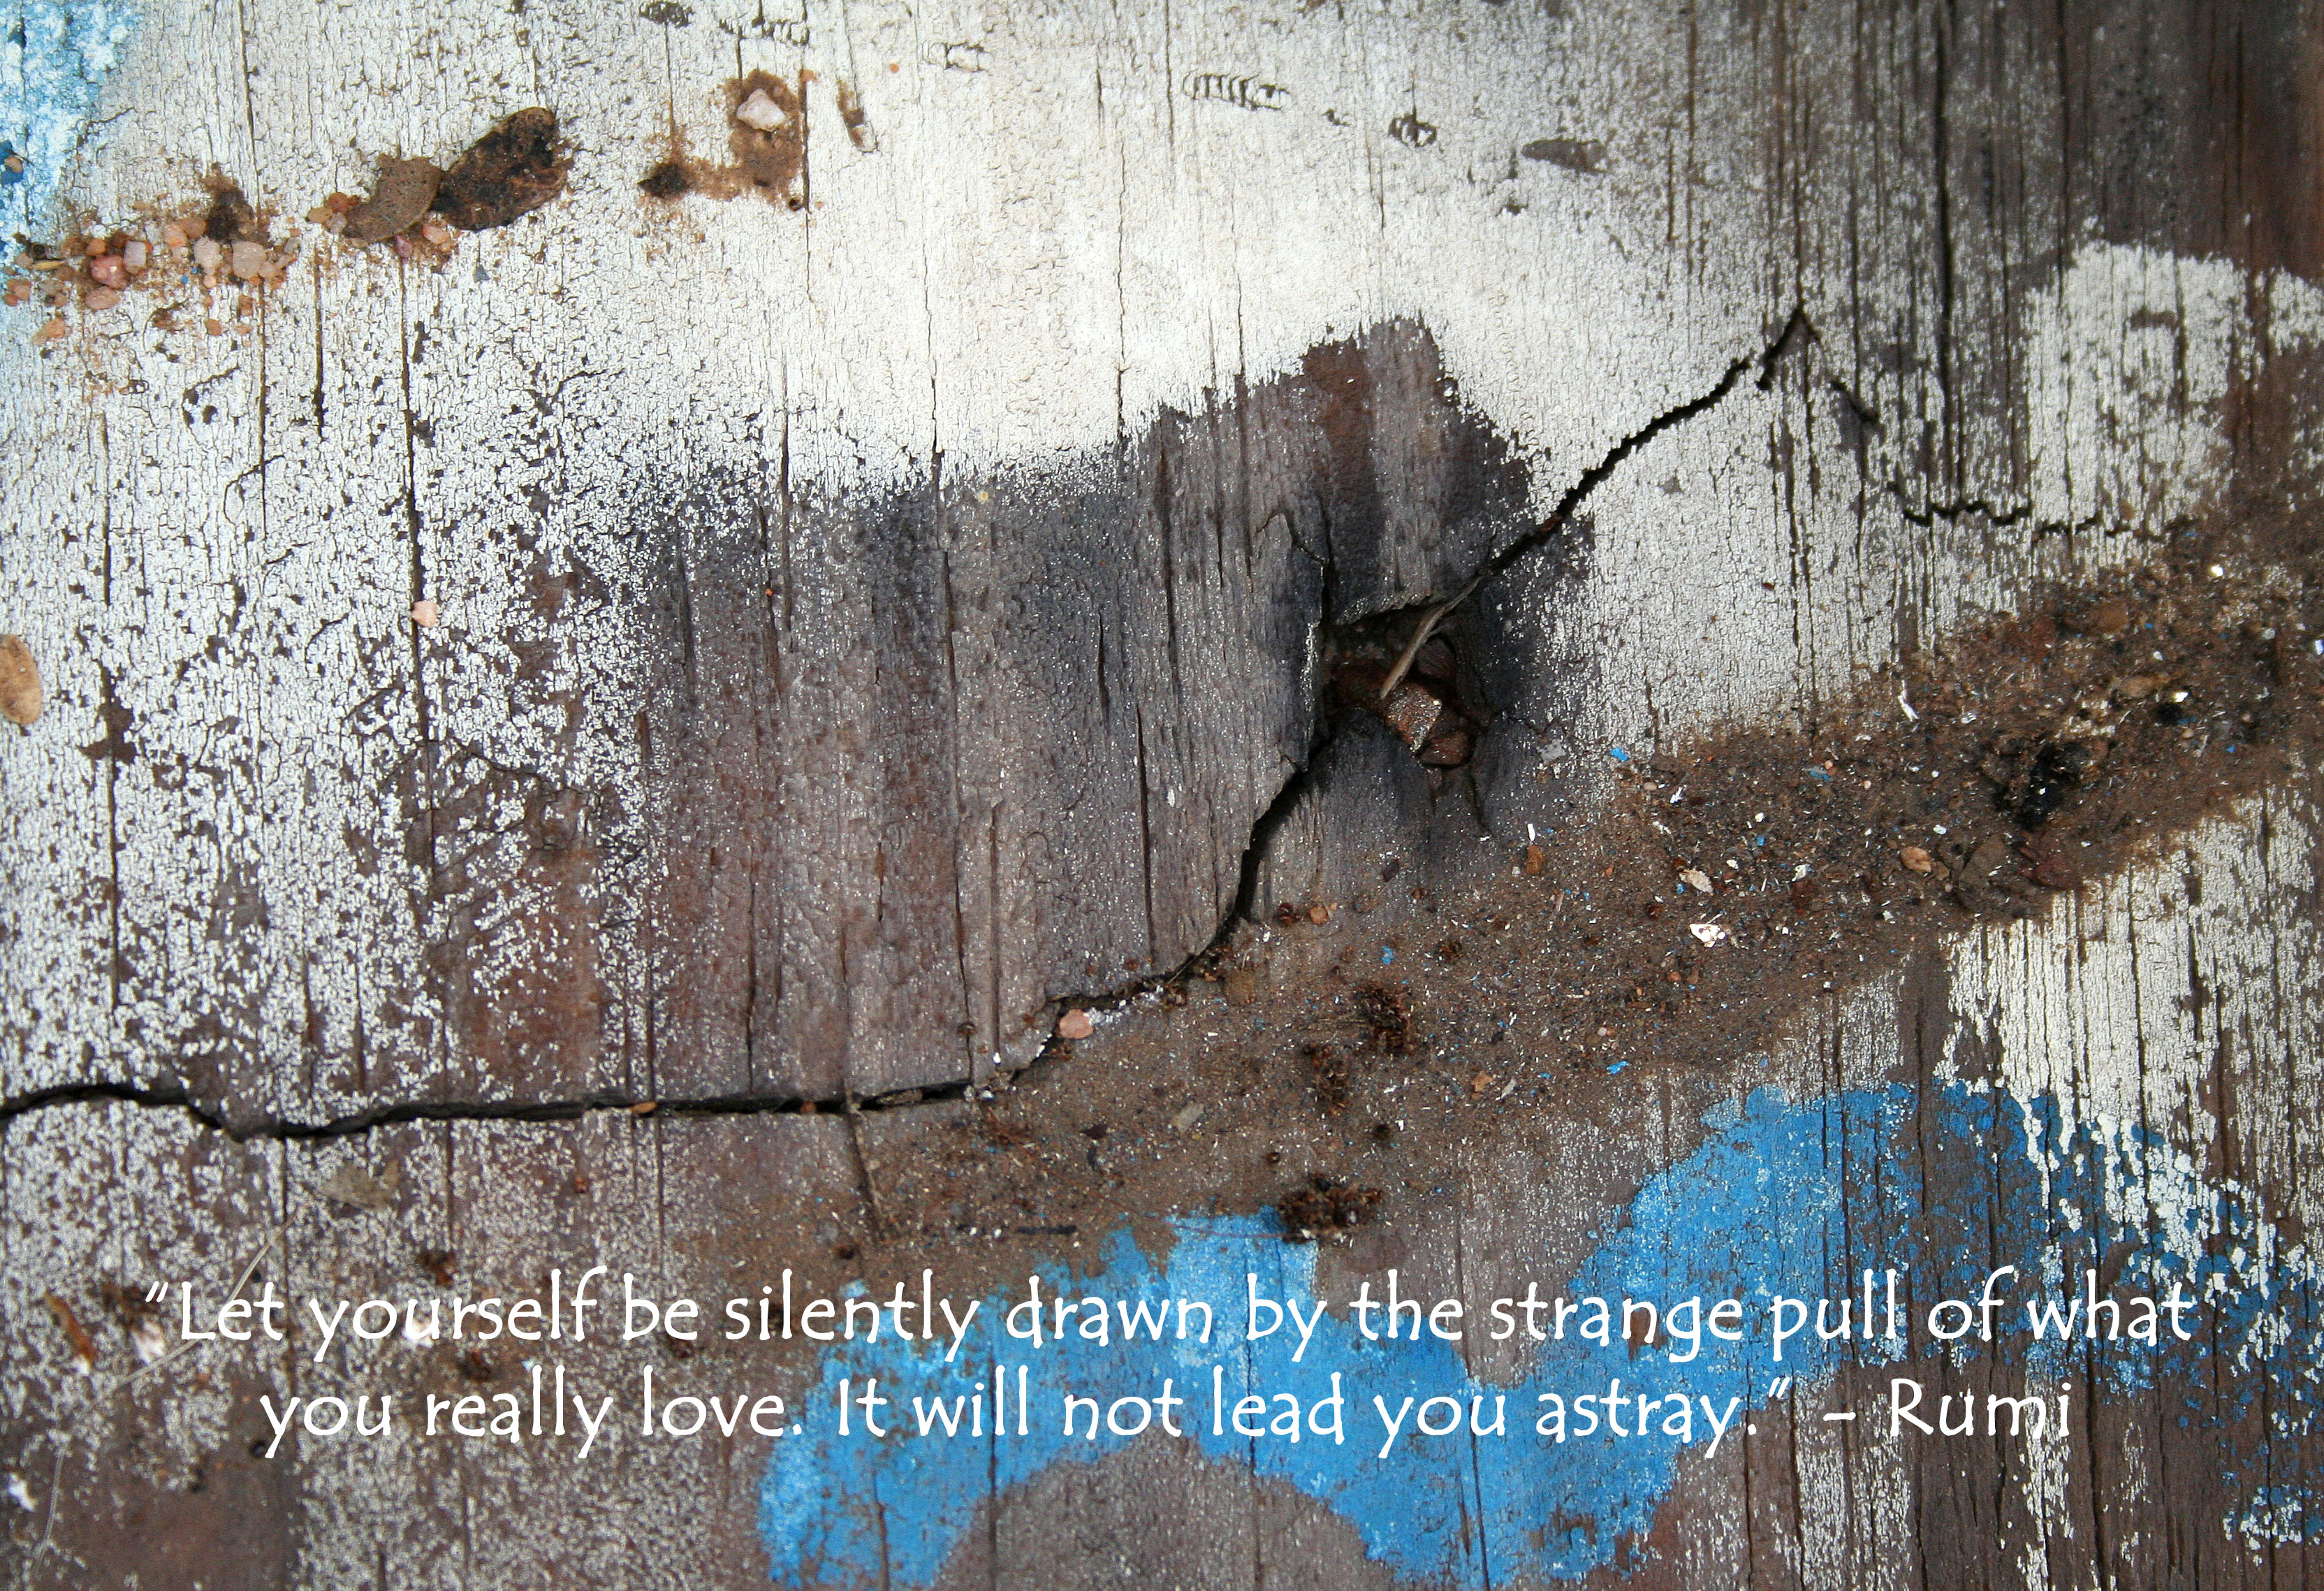 """""""Let yourself be silently drawn by the strange pull of what you really love. It will not lead you astray."""" - Rumi quote written on photo of a piece of painted wood."""